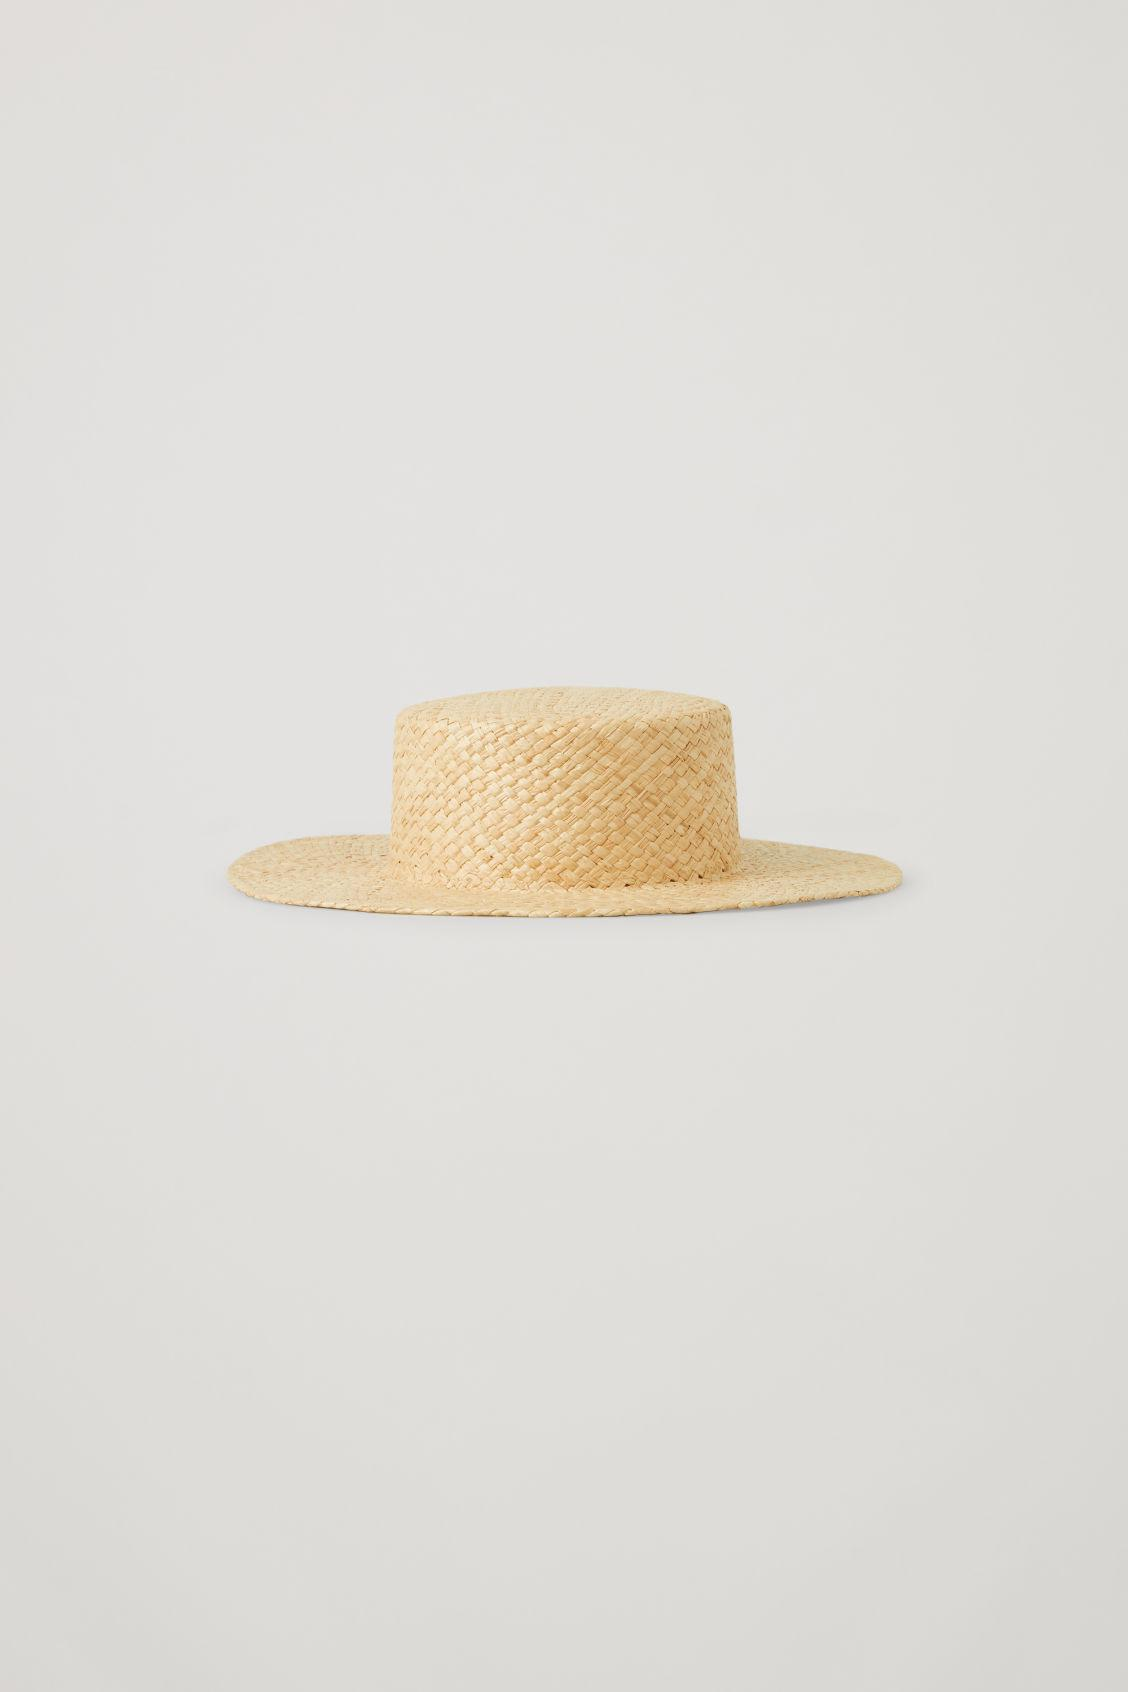 OVERSIZED STRAW BOATER HAT